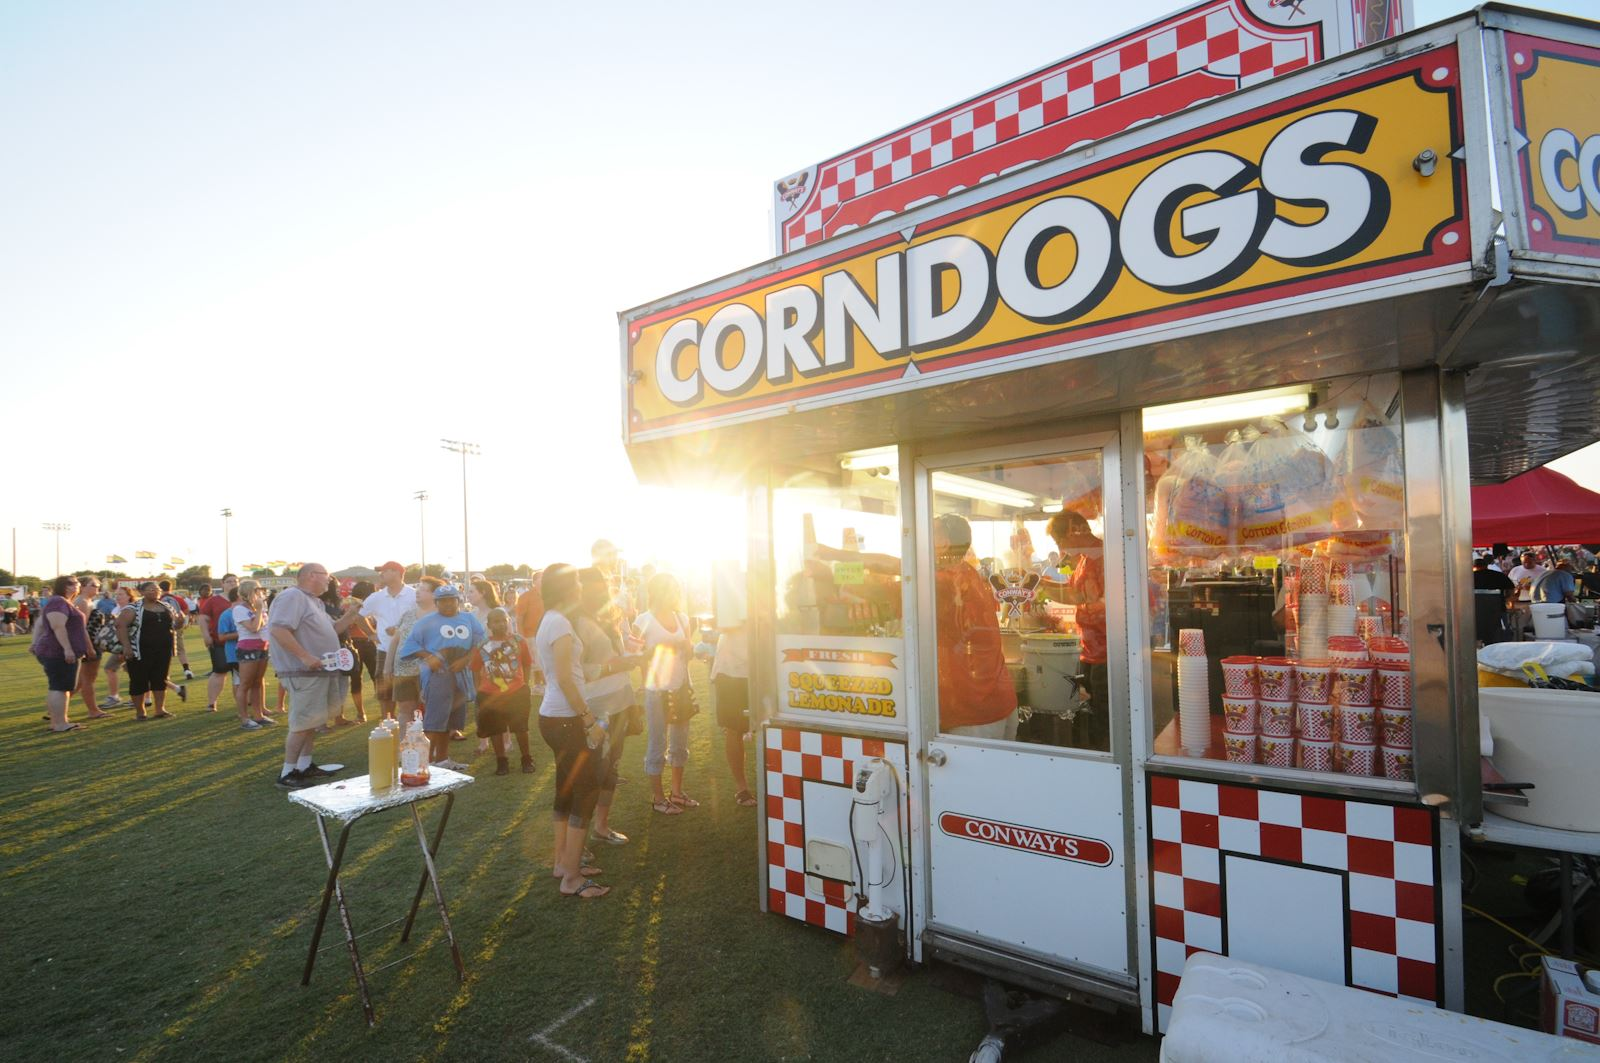 A line of people waiting to order food at a corn dog stand